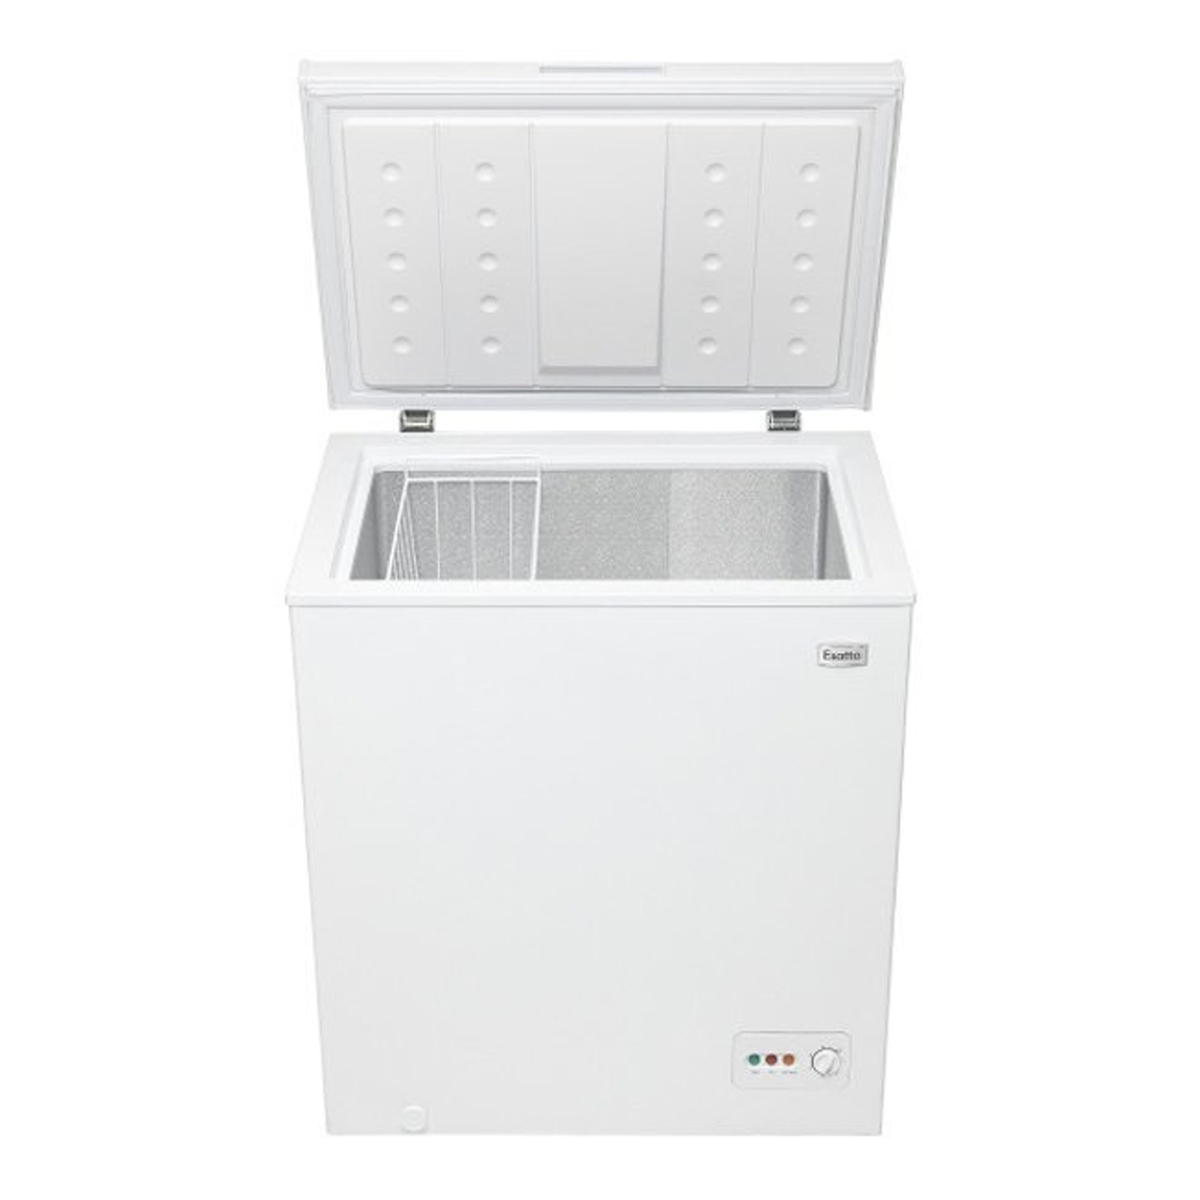 Esatto ECF146W 146L Chest Freezer 61156